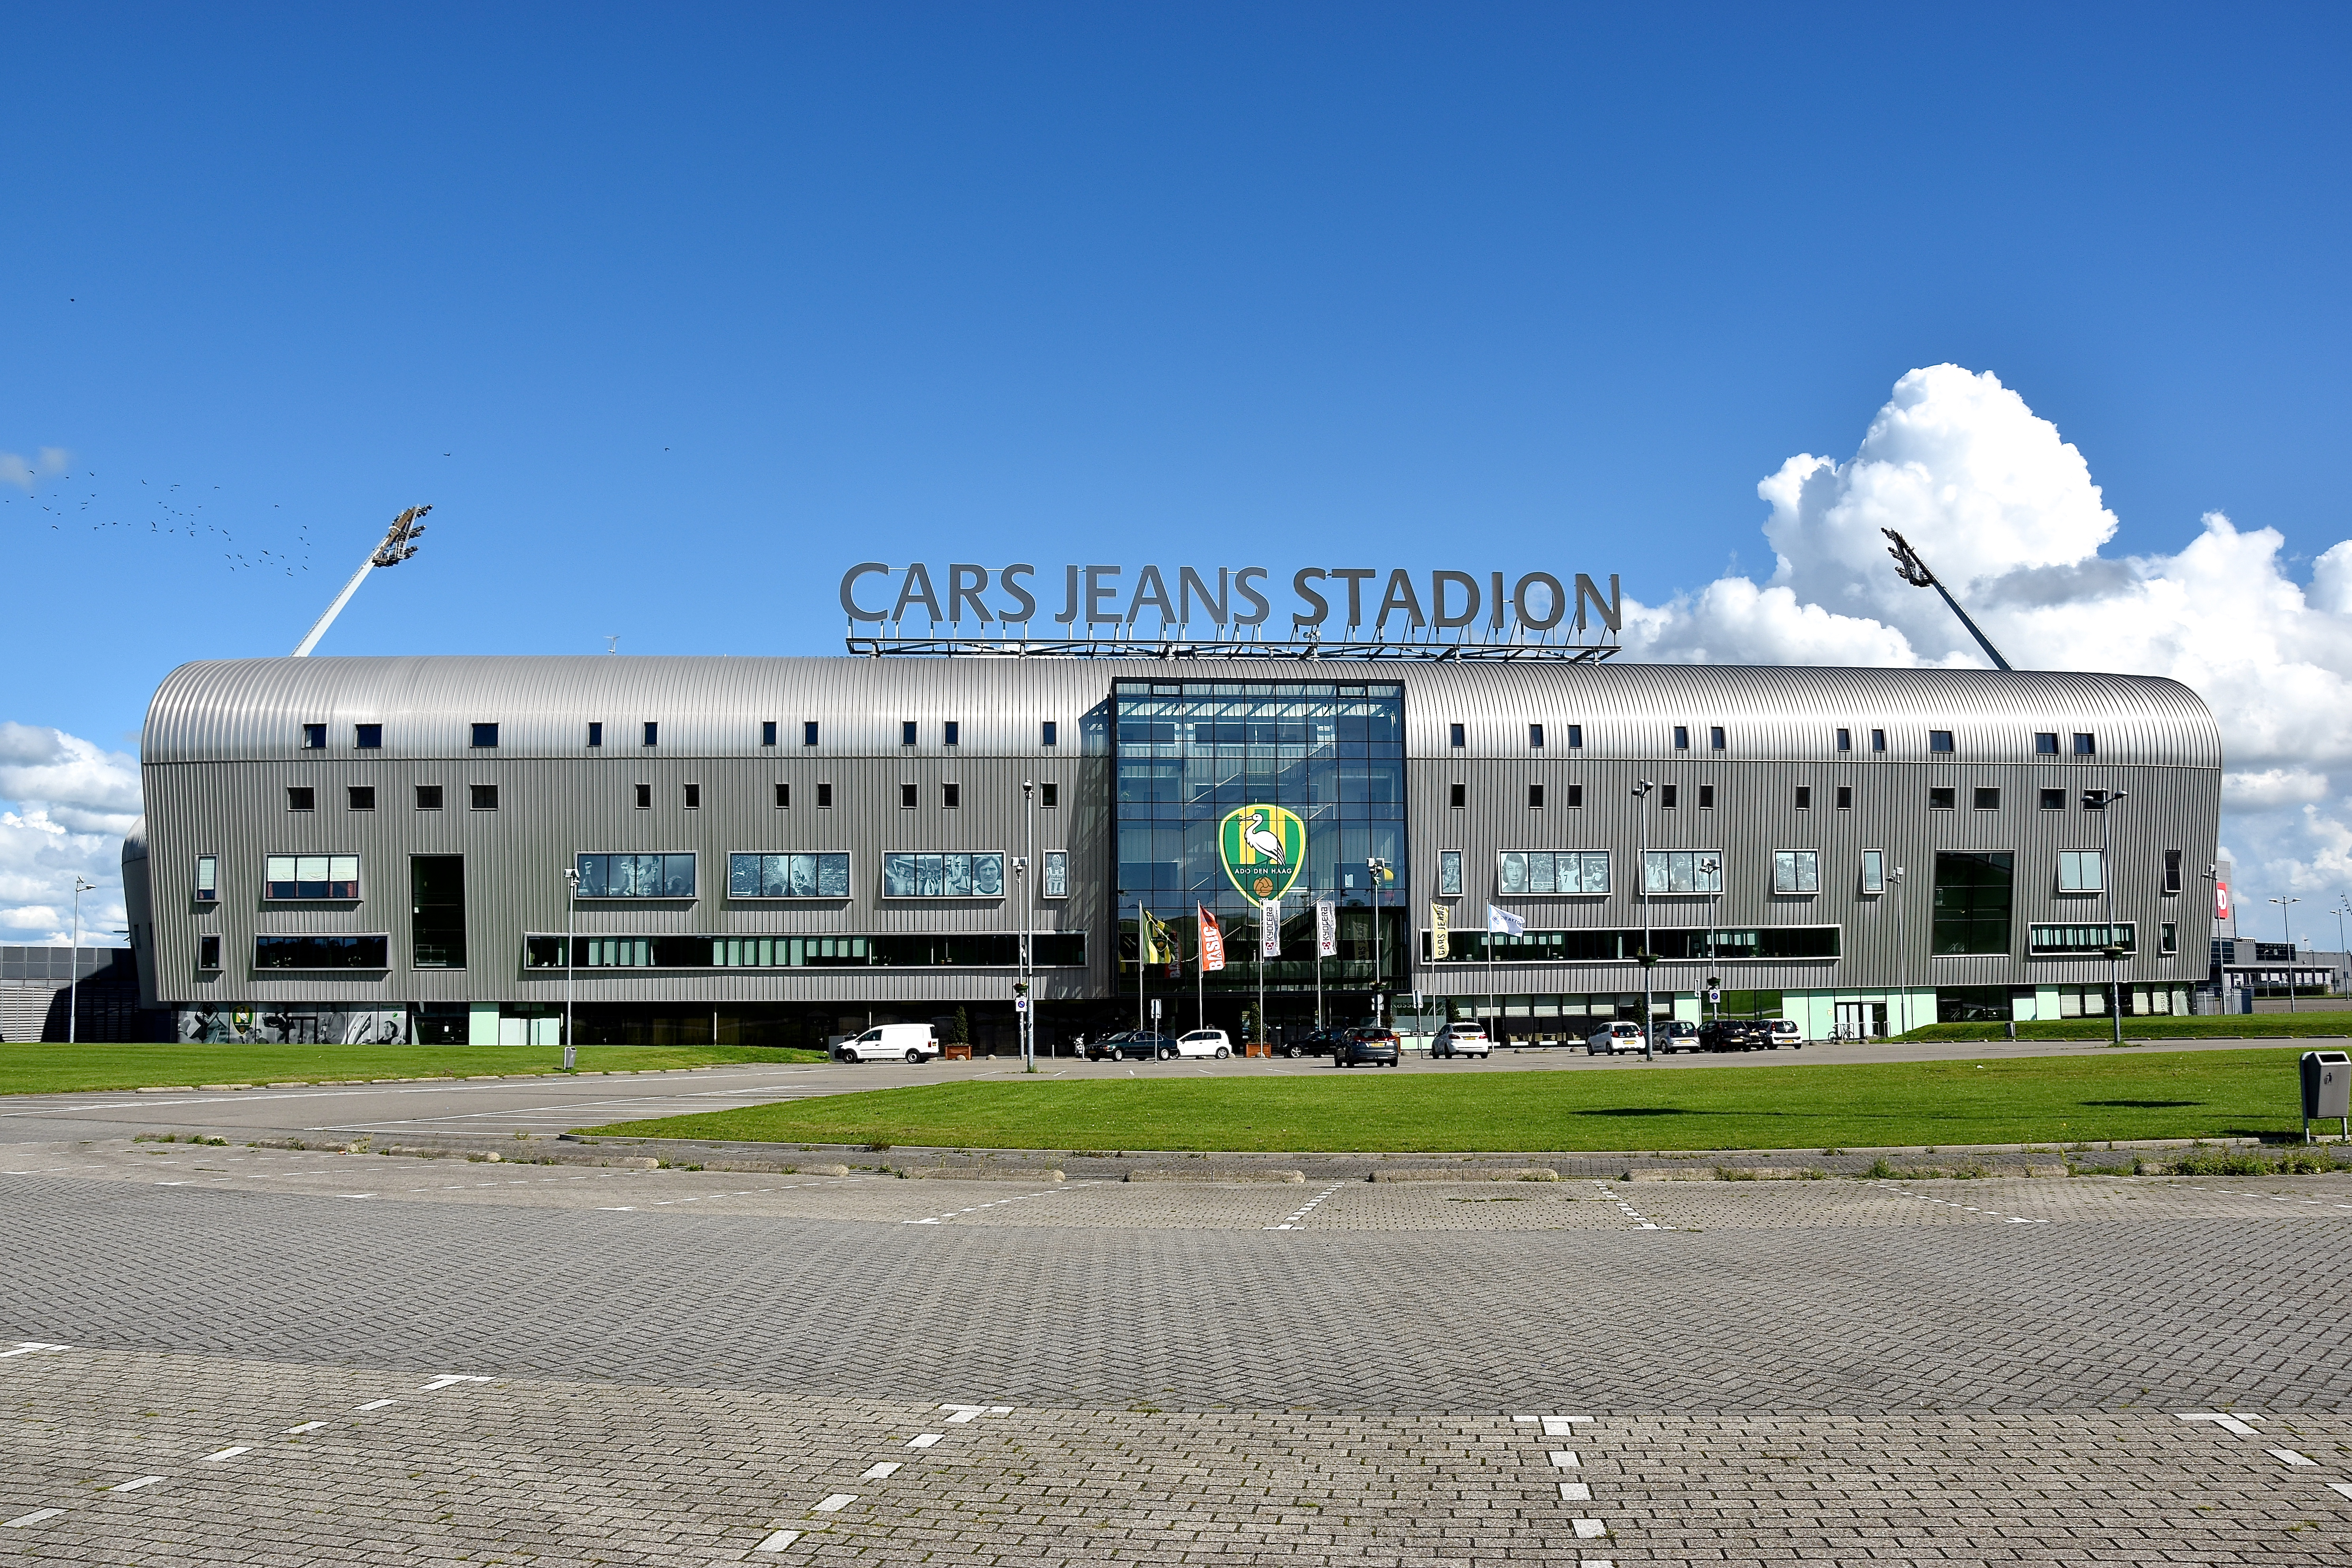 Cars Jeans Stadion Wikipedia